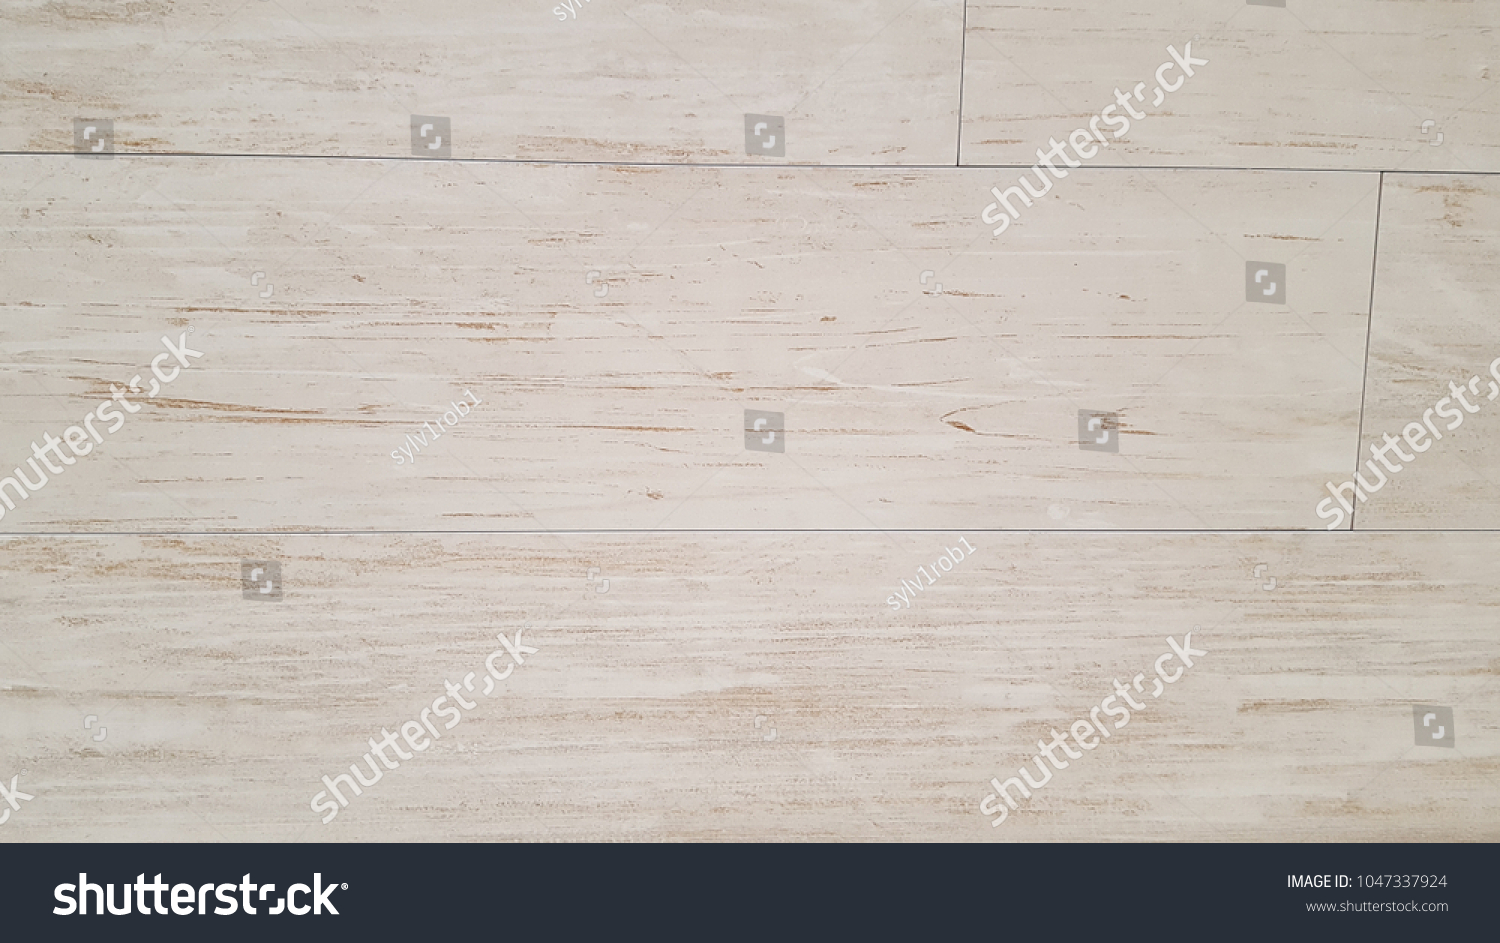 Wood pattern and texture for background #1047337924